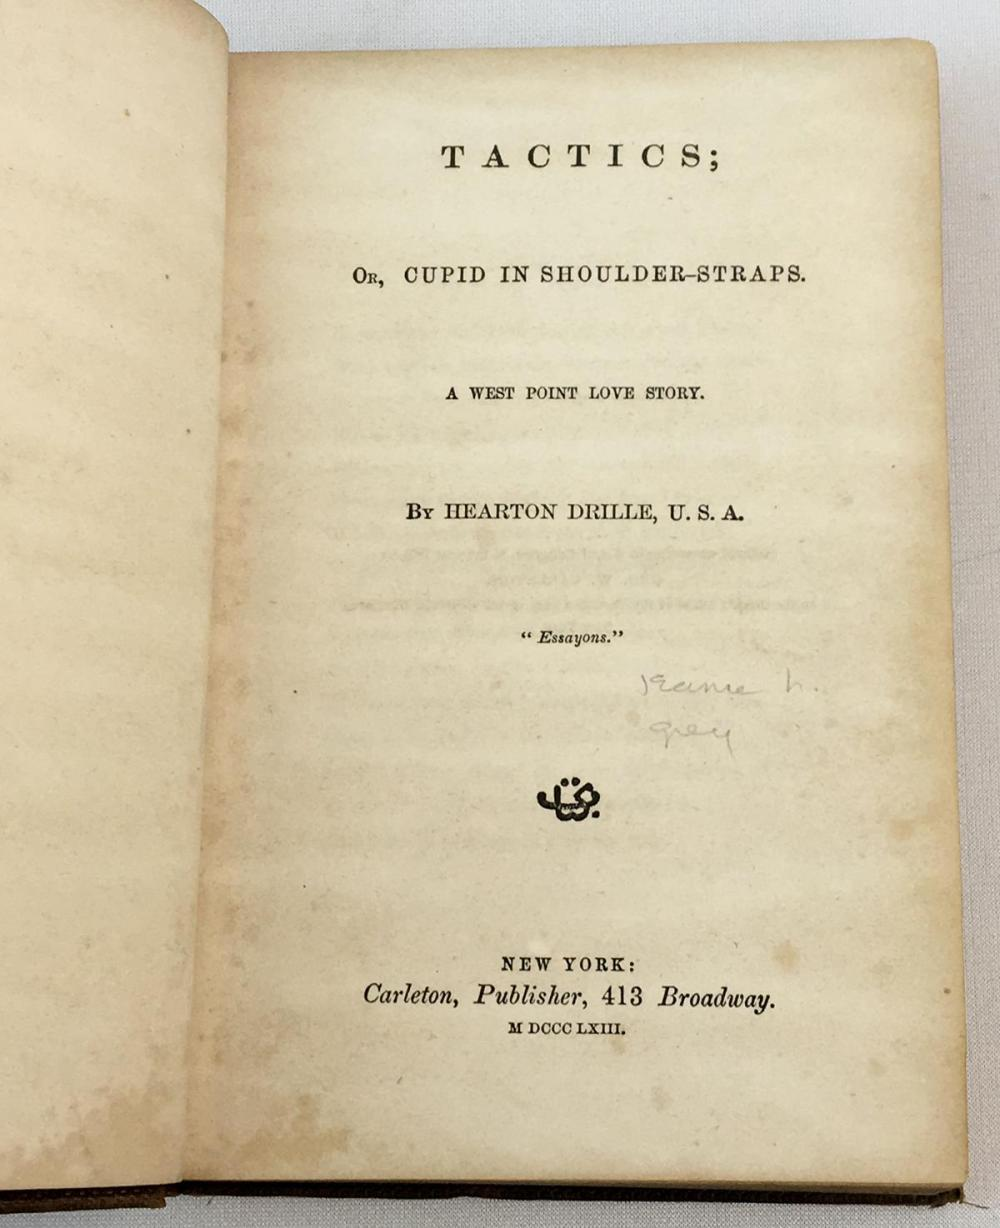 1863 Tactics or Cupid in Shoulder Straps A West Point Love Story by Hearton Drille, U.S.A. (Civil War)